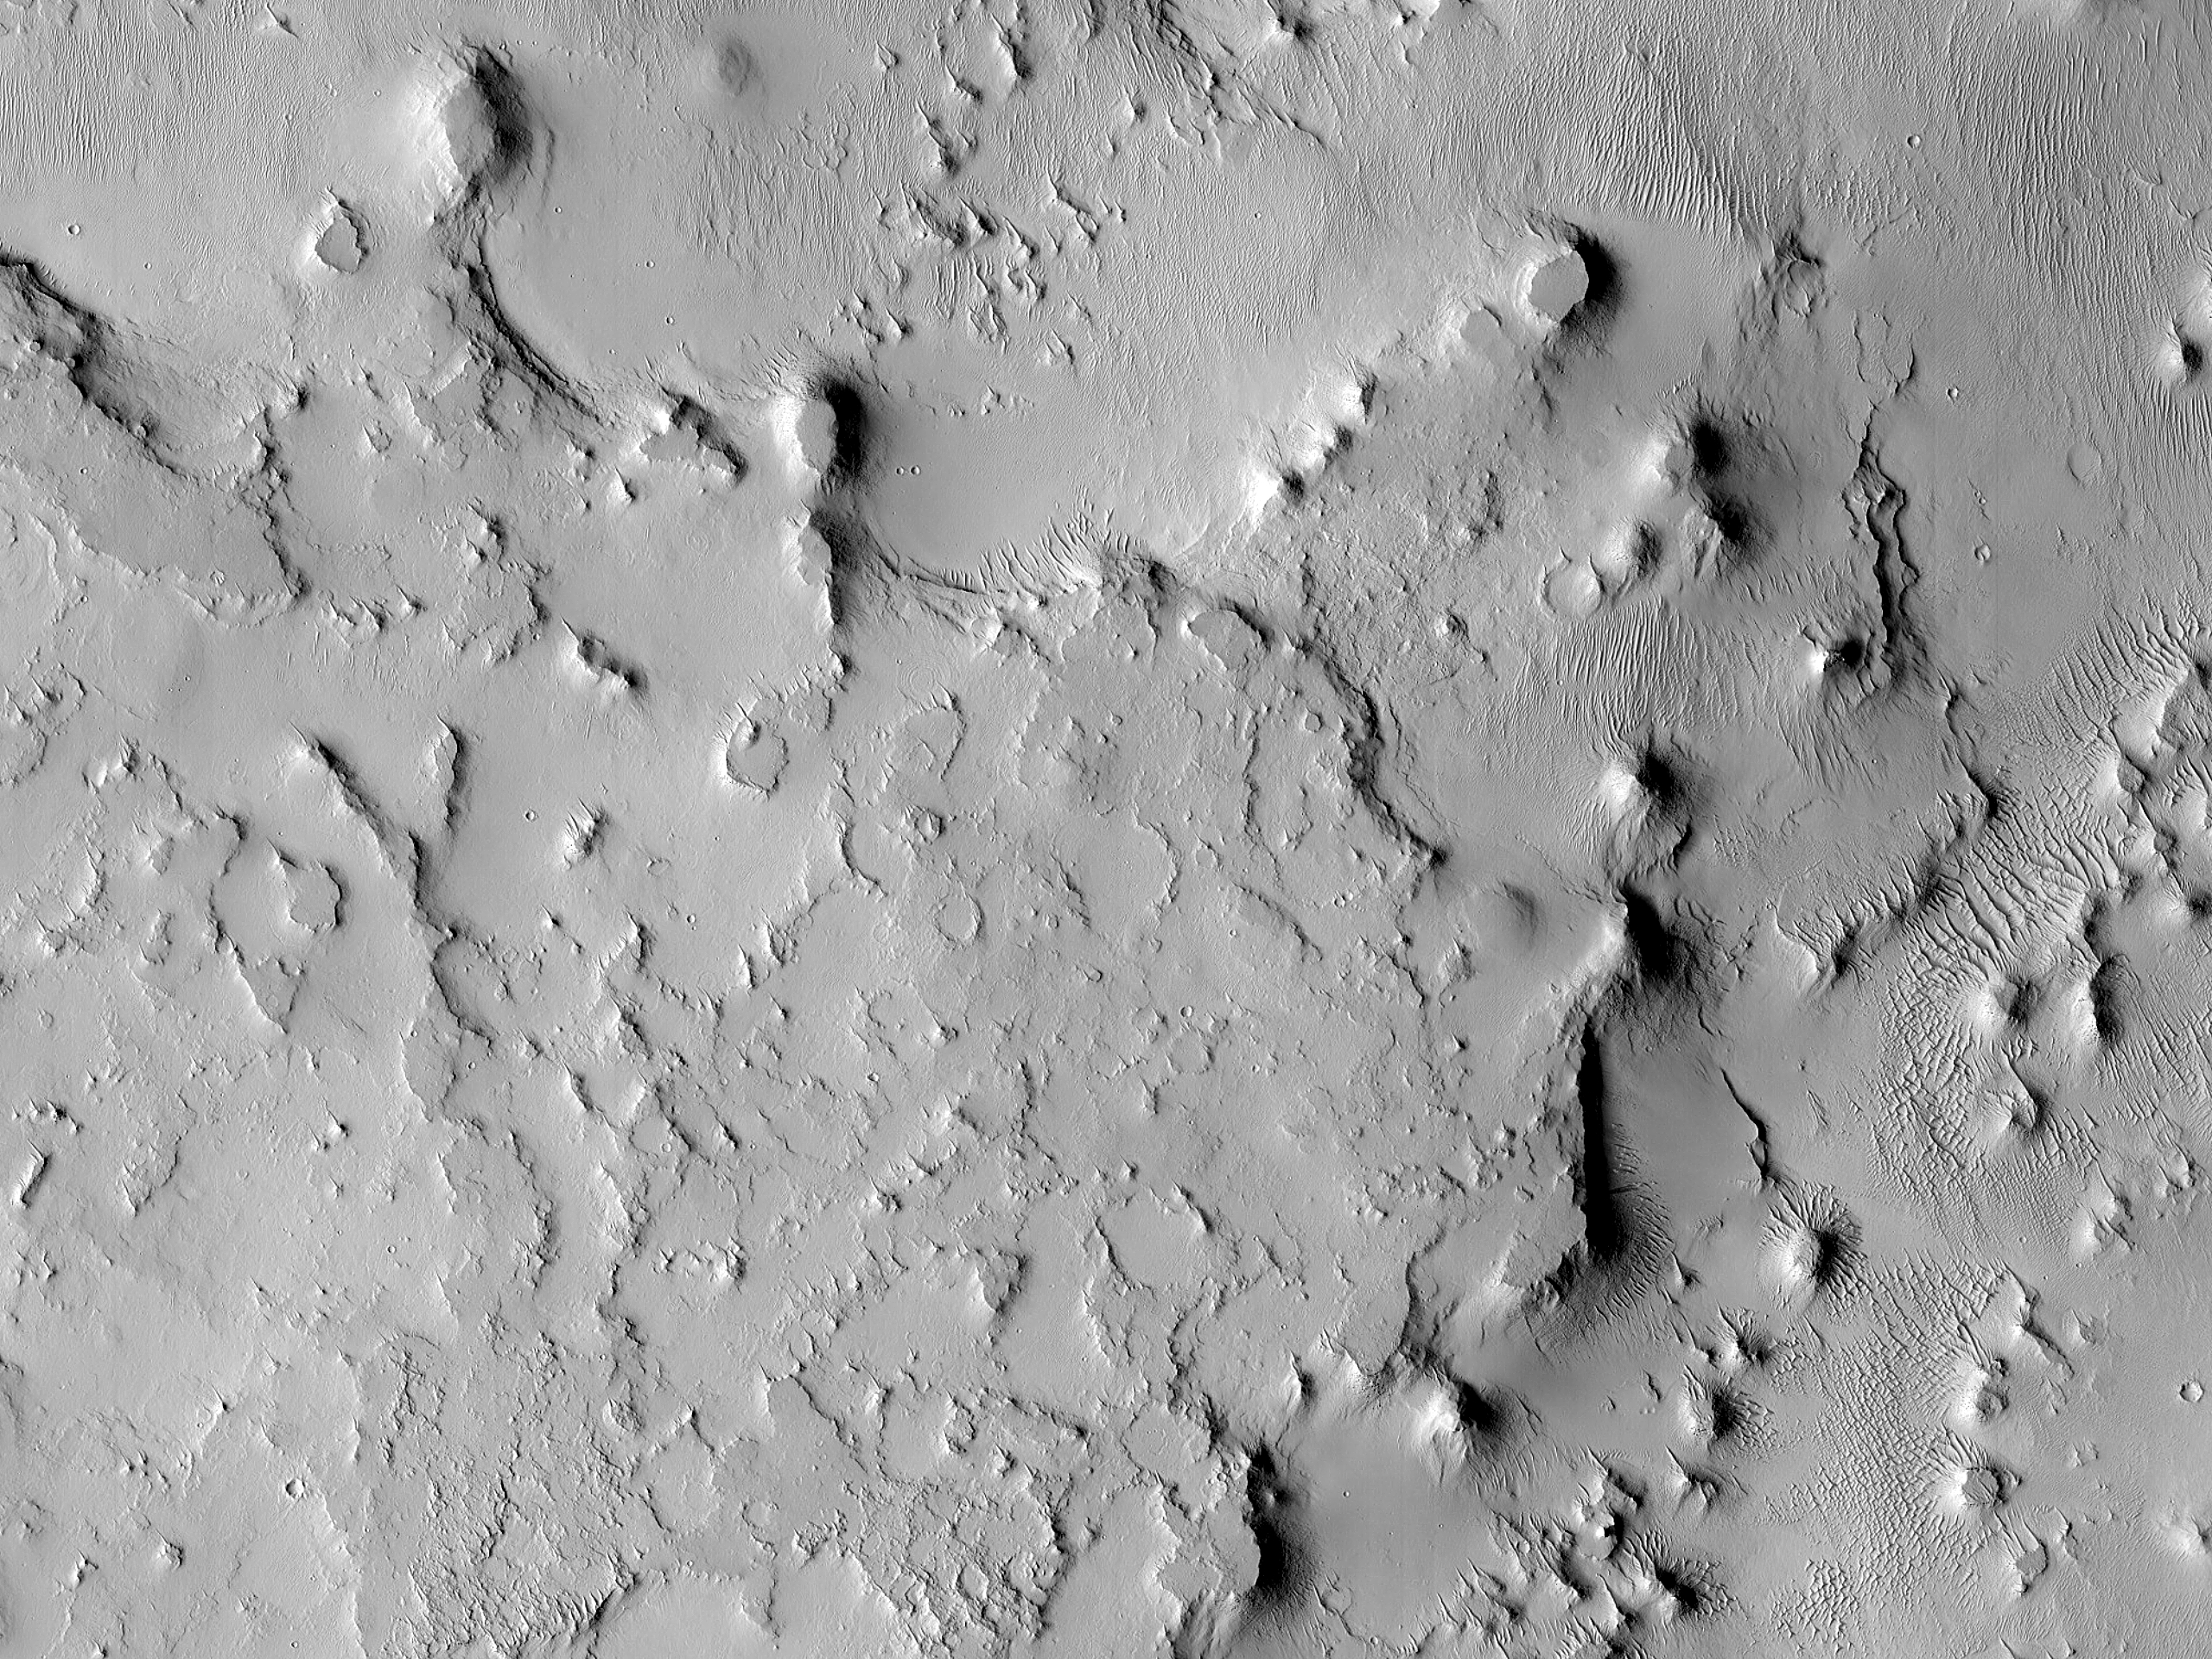 Cliffs and Stratified Features